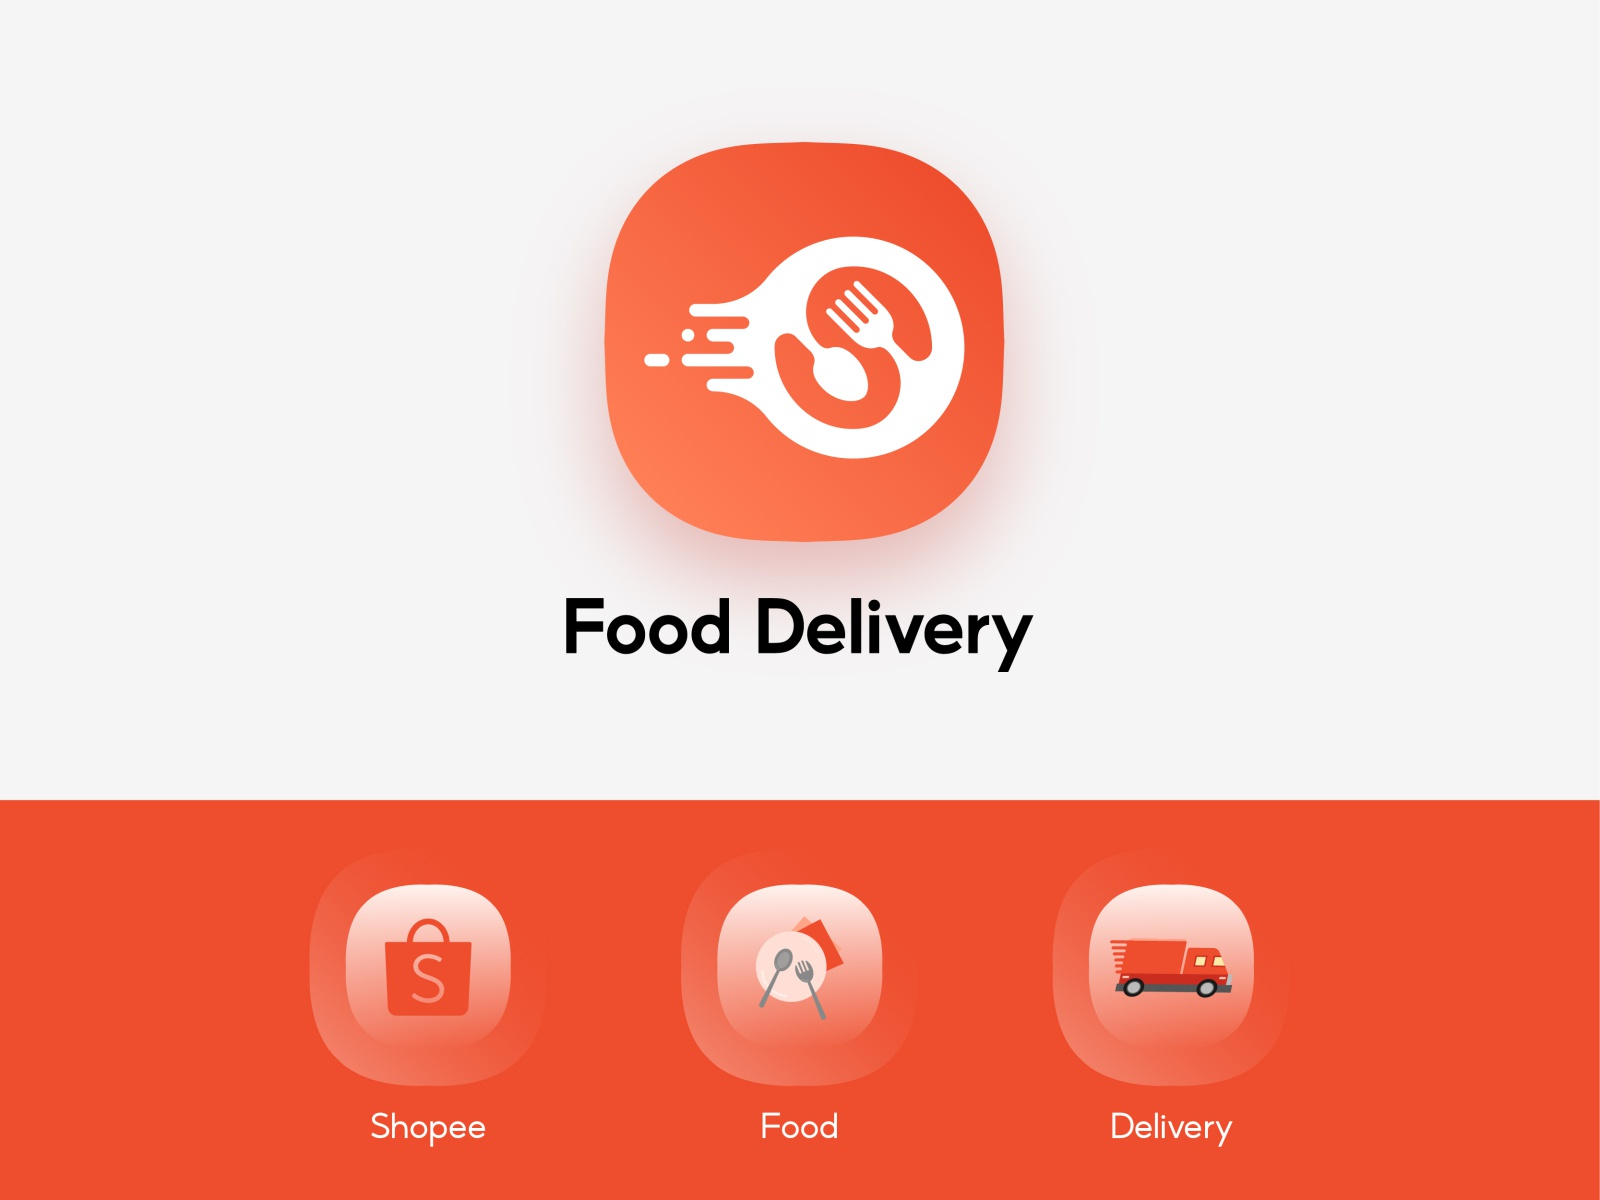 shopee food delivery app icon redesign concept by zihui yang on dribbble food delivery app icon redesign concept